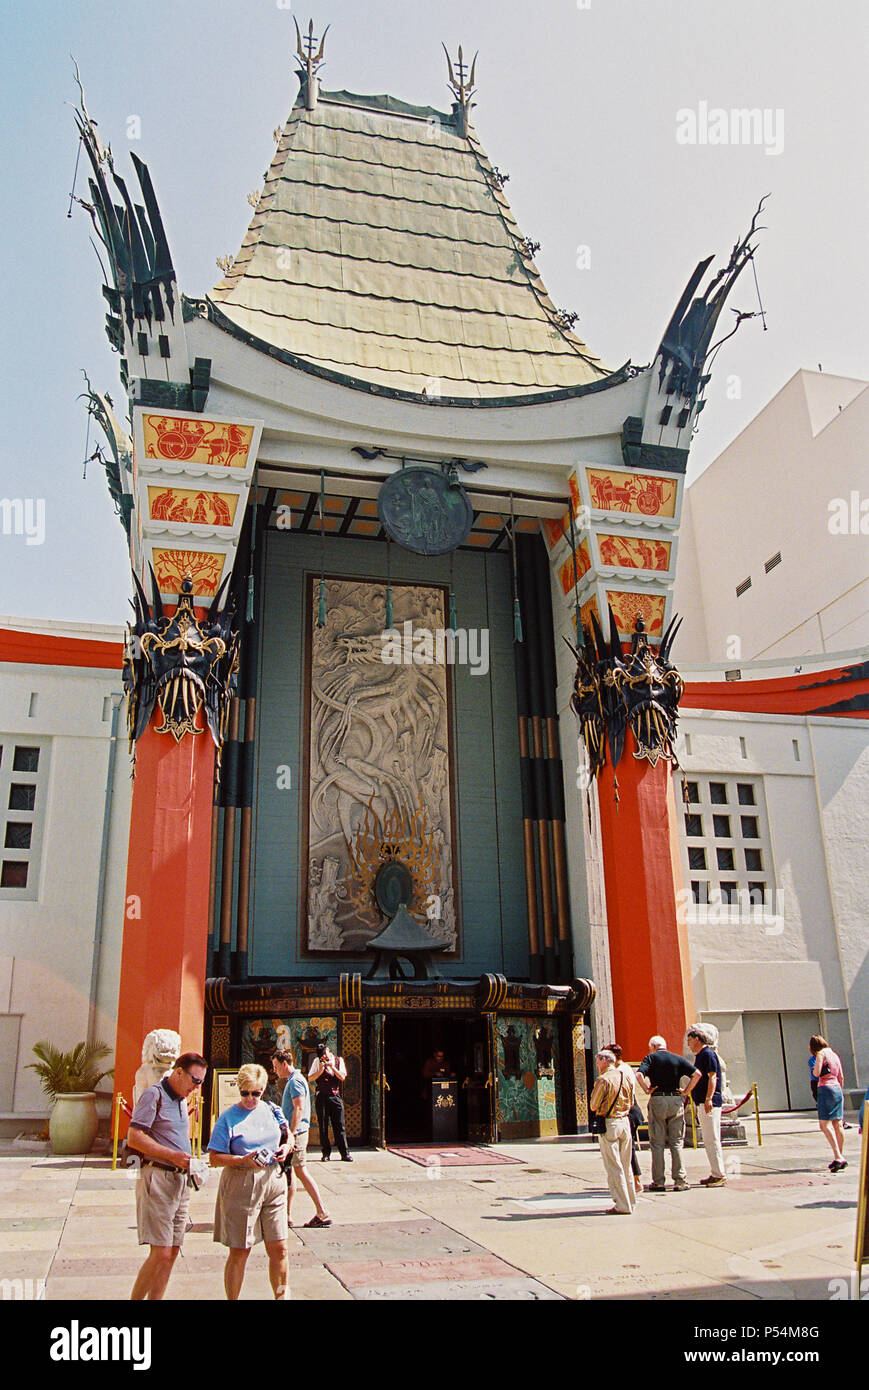 Grauman's Chinese Theatre, Hollywood Boulevard, Hollywood, Los Angeles, California, United States of America. - Stock Image